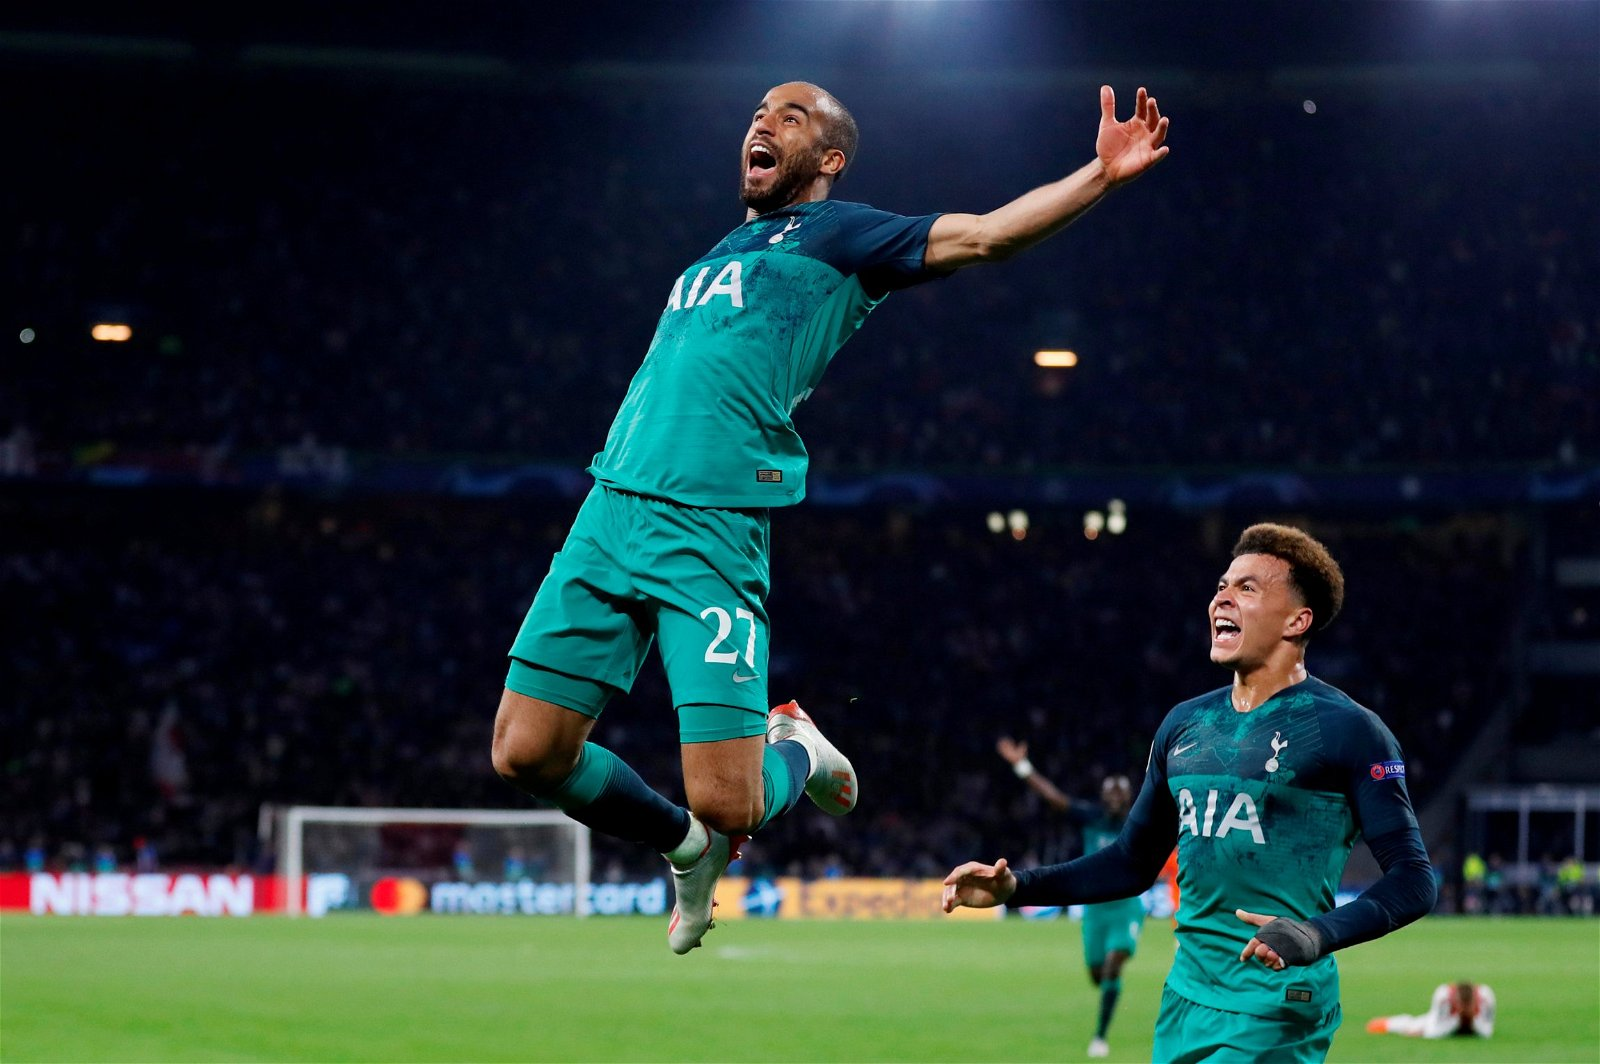 Lucas Moura Tottenham unsung hero - Sissoko v Henderson, semi-final heroes: How the Champions League final could be decided